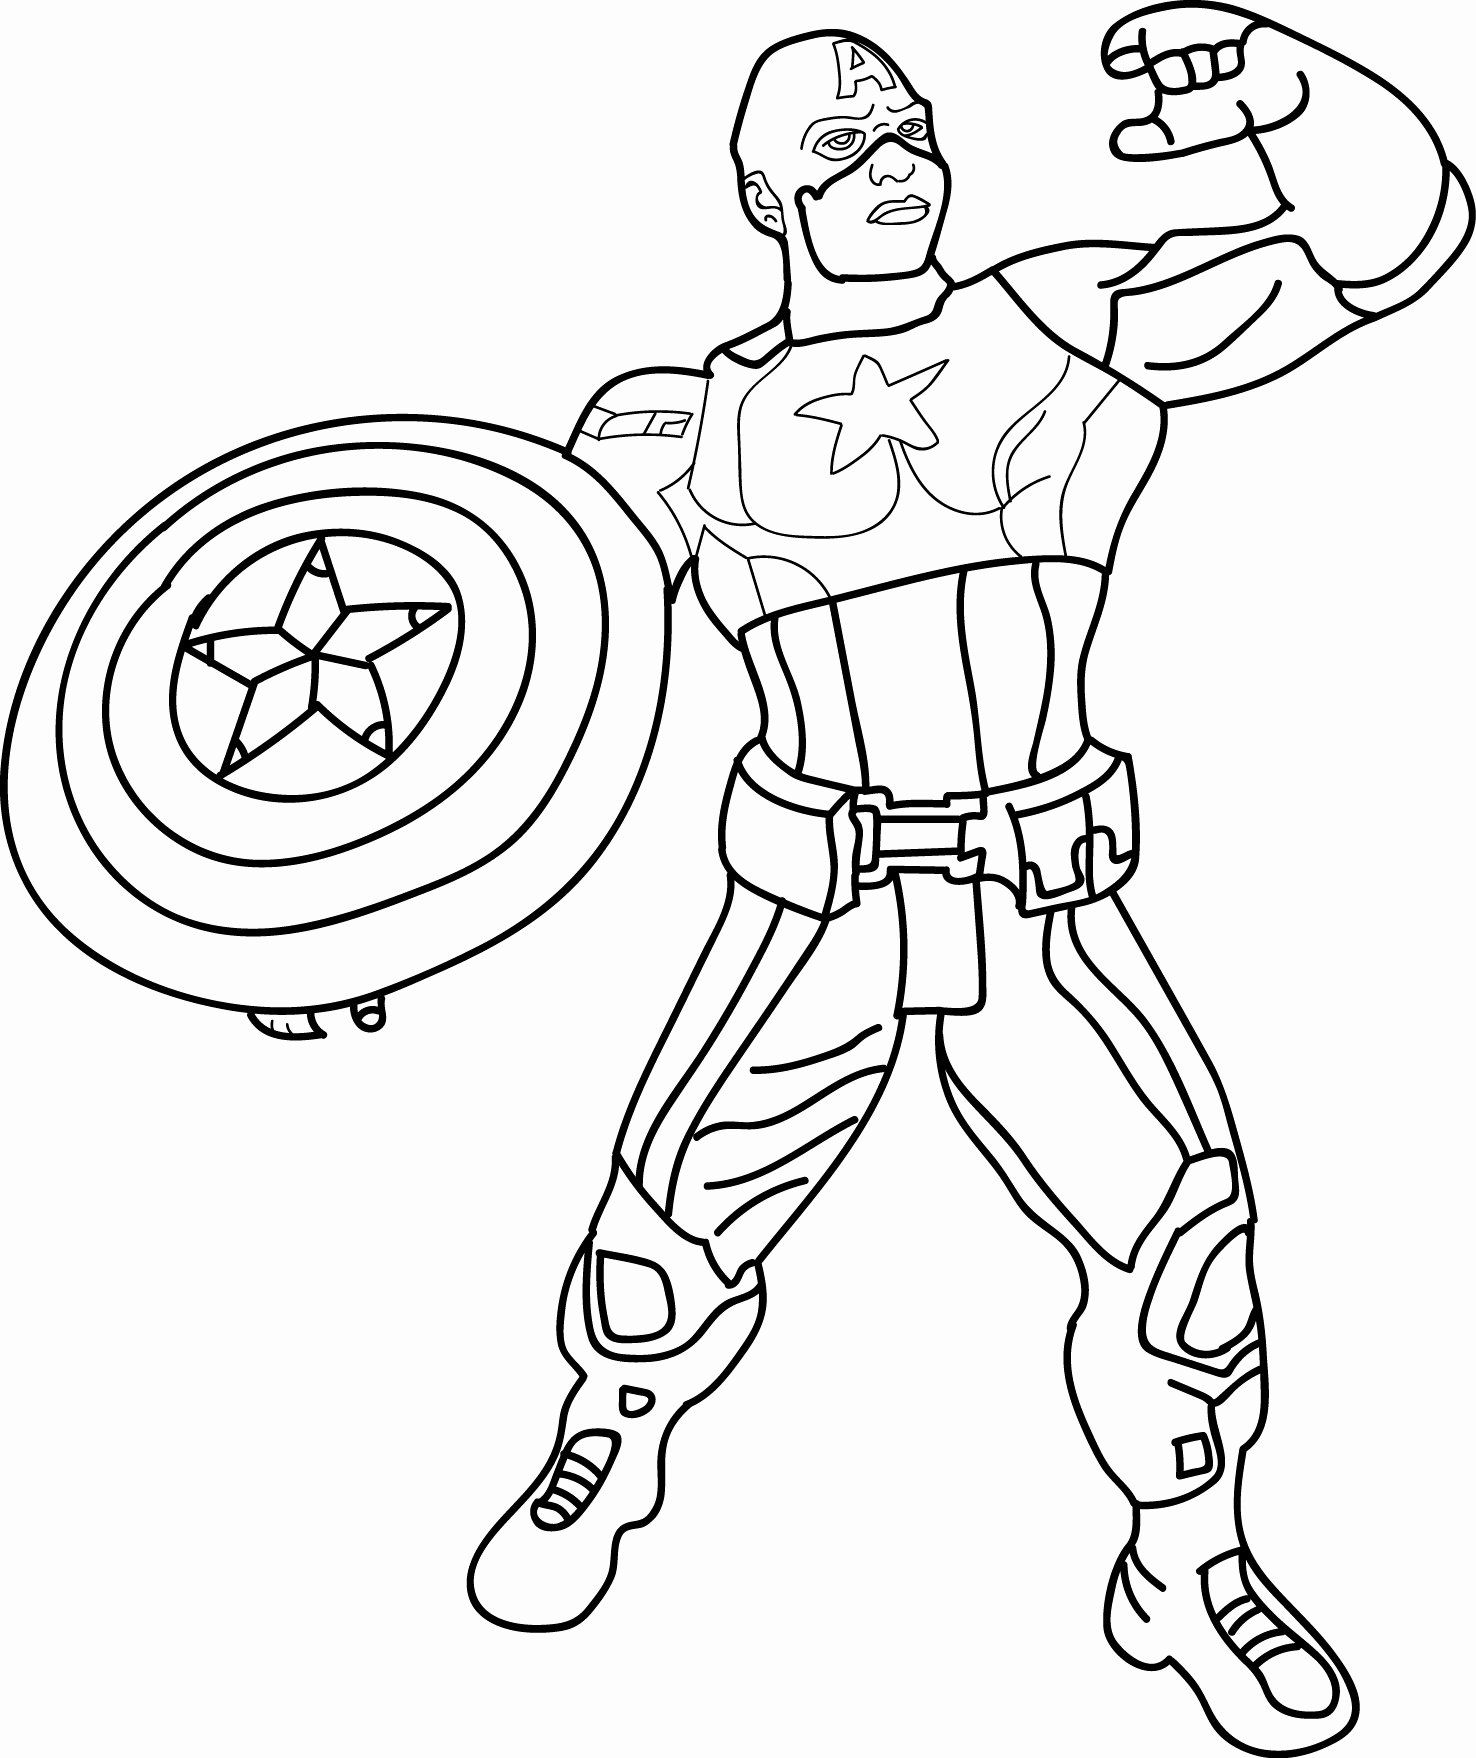 Captain America Coloring Page New Avenger Kids Cartoon Captain America Toy Captain America Coloring Pages Avengers Coloring Pages Captain America Coloring Page